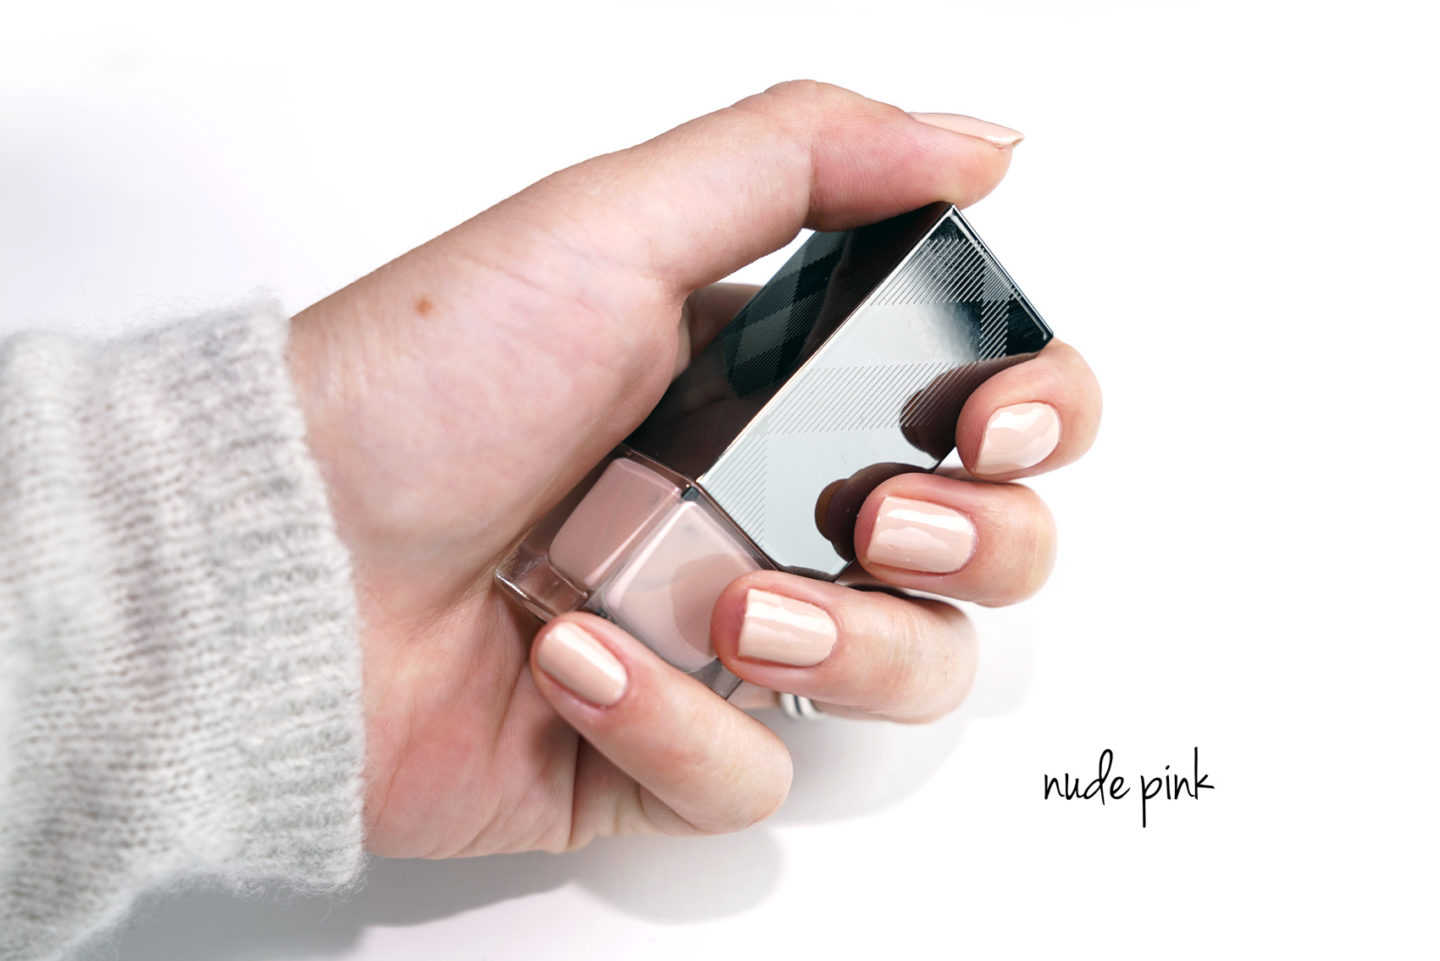 Burberry Nude Pink Polish | The Beauty Look Book